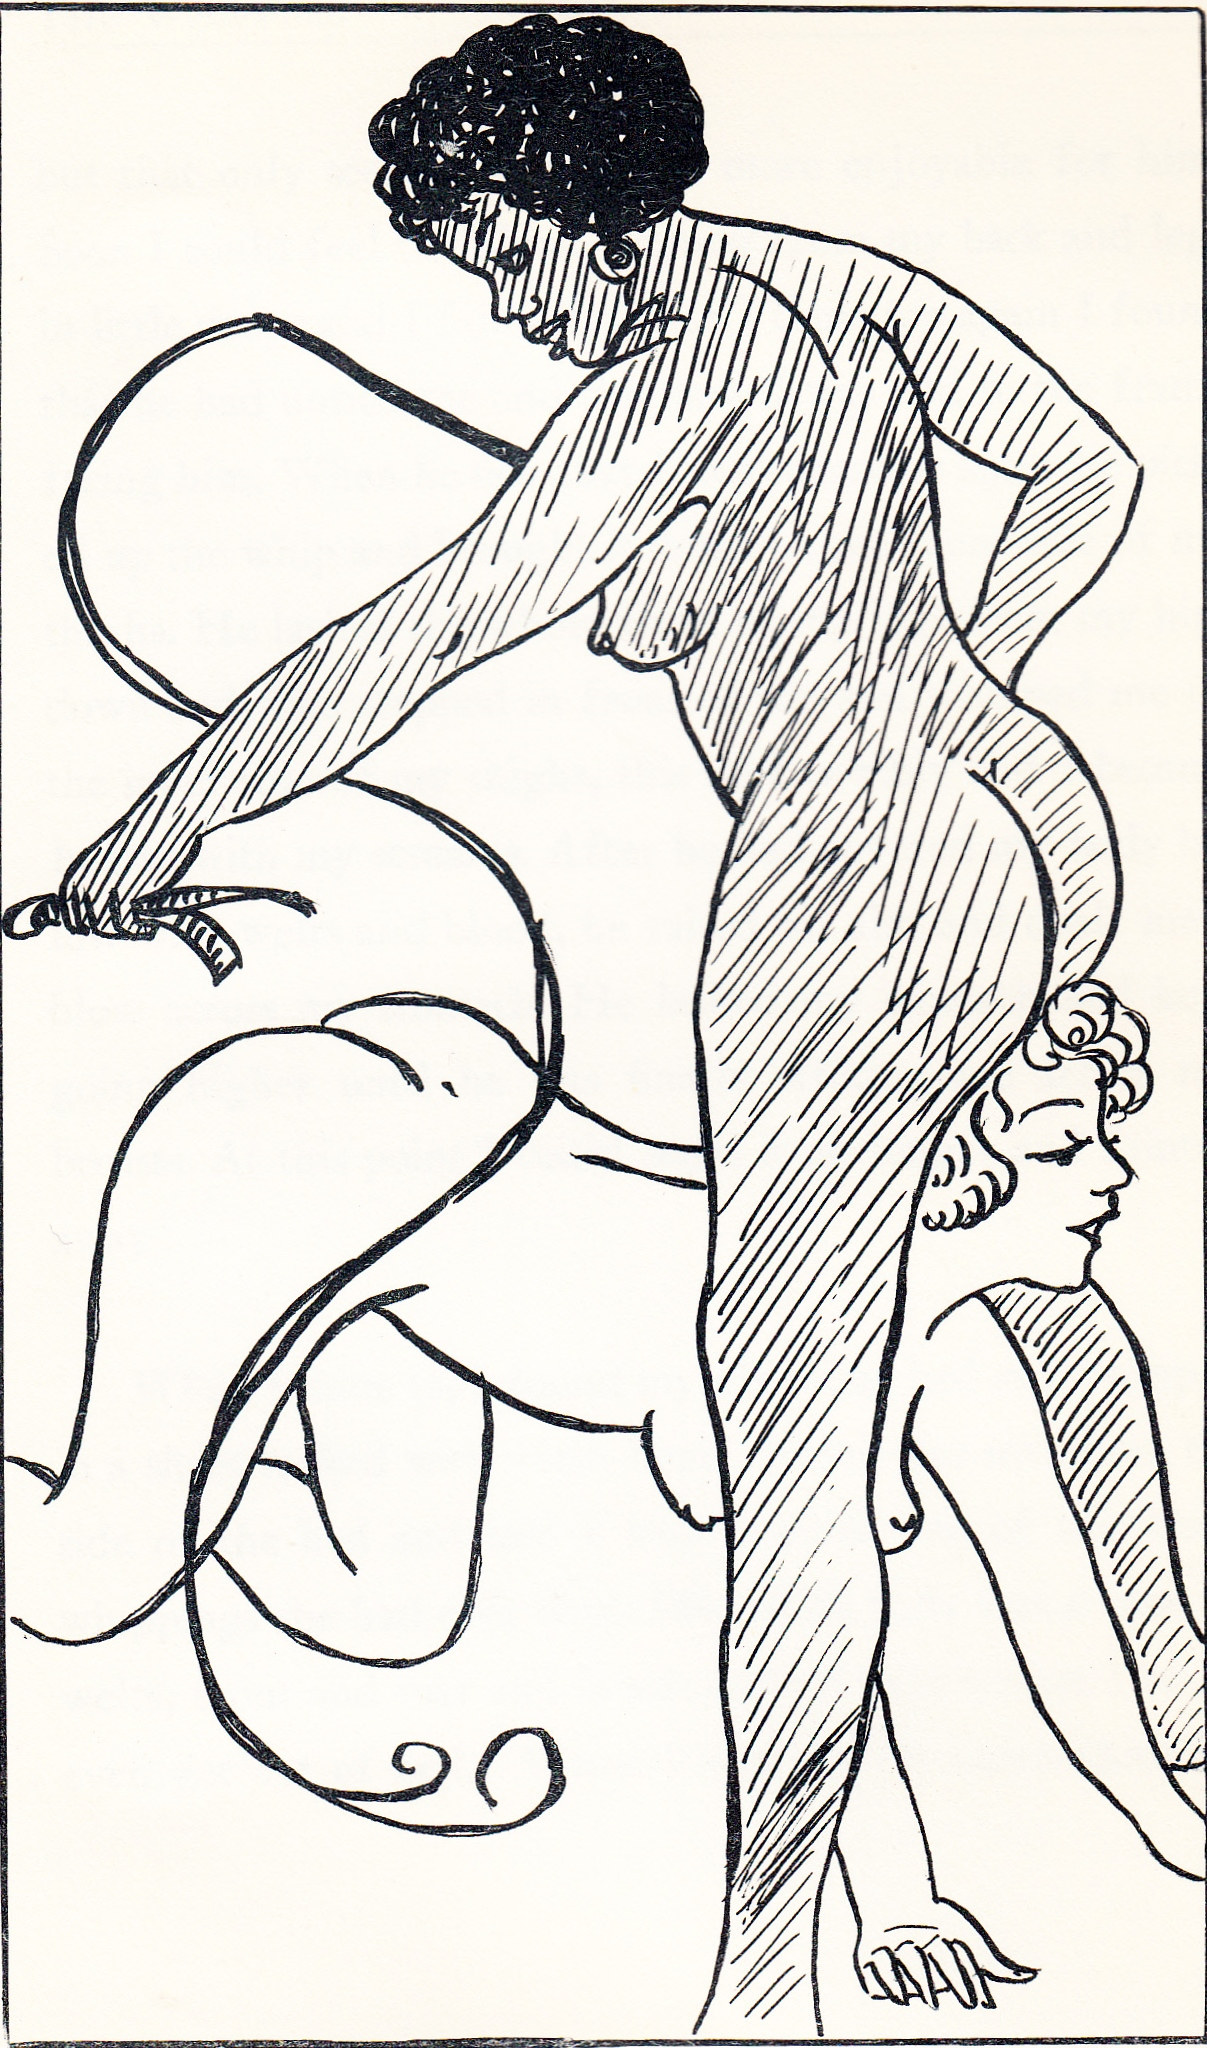 Spanked in Bed with The Whippers C1930's_0009